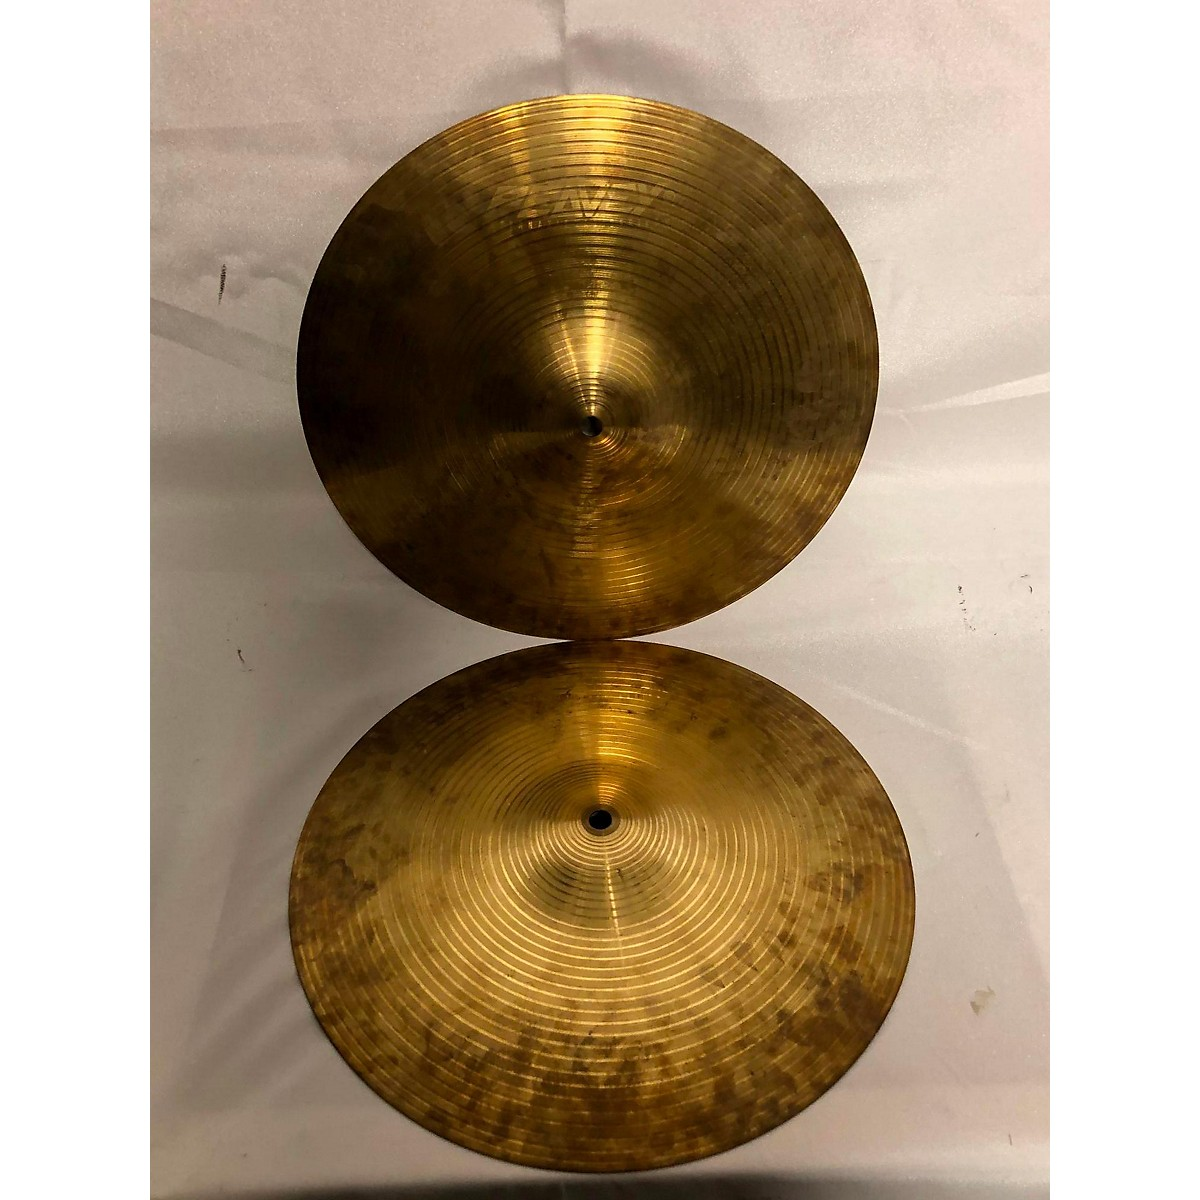 Peavey 14in International Series Cymbal